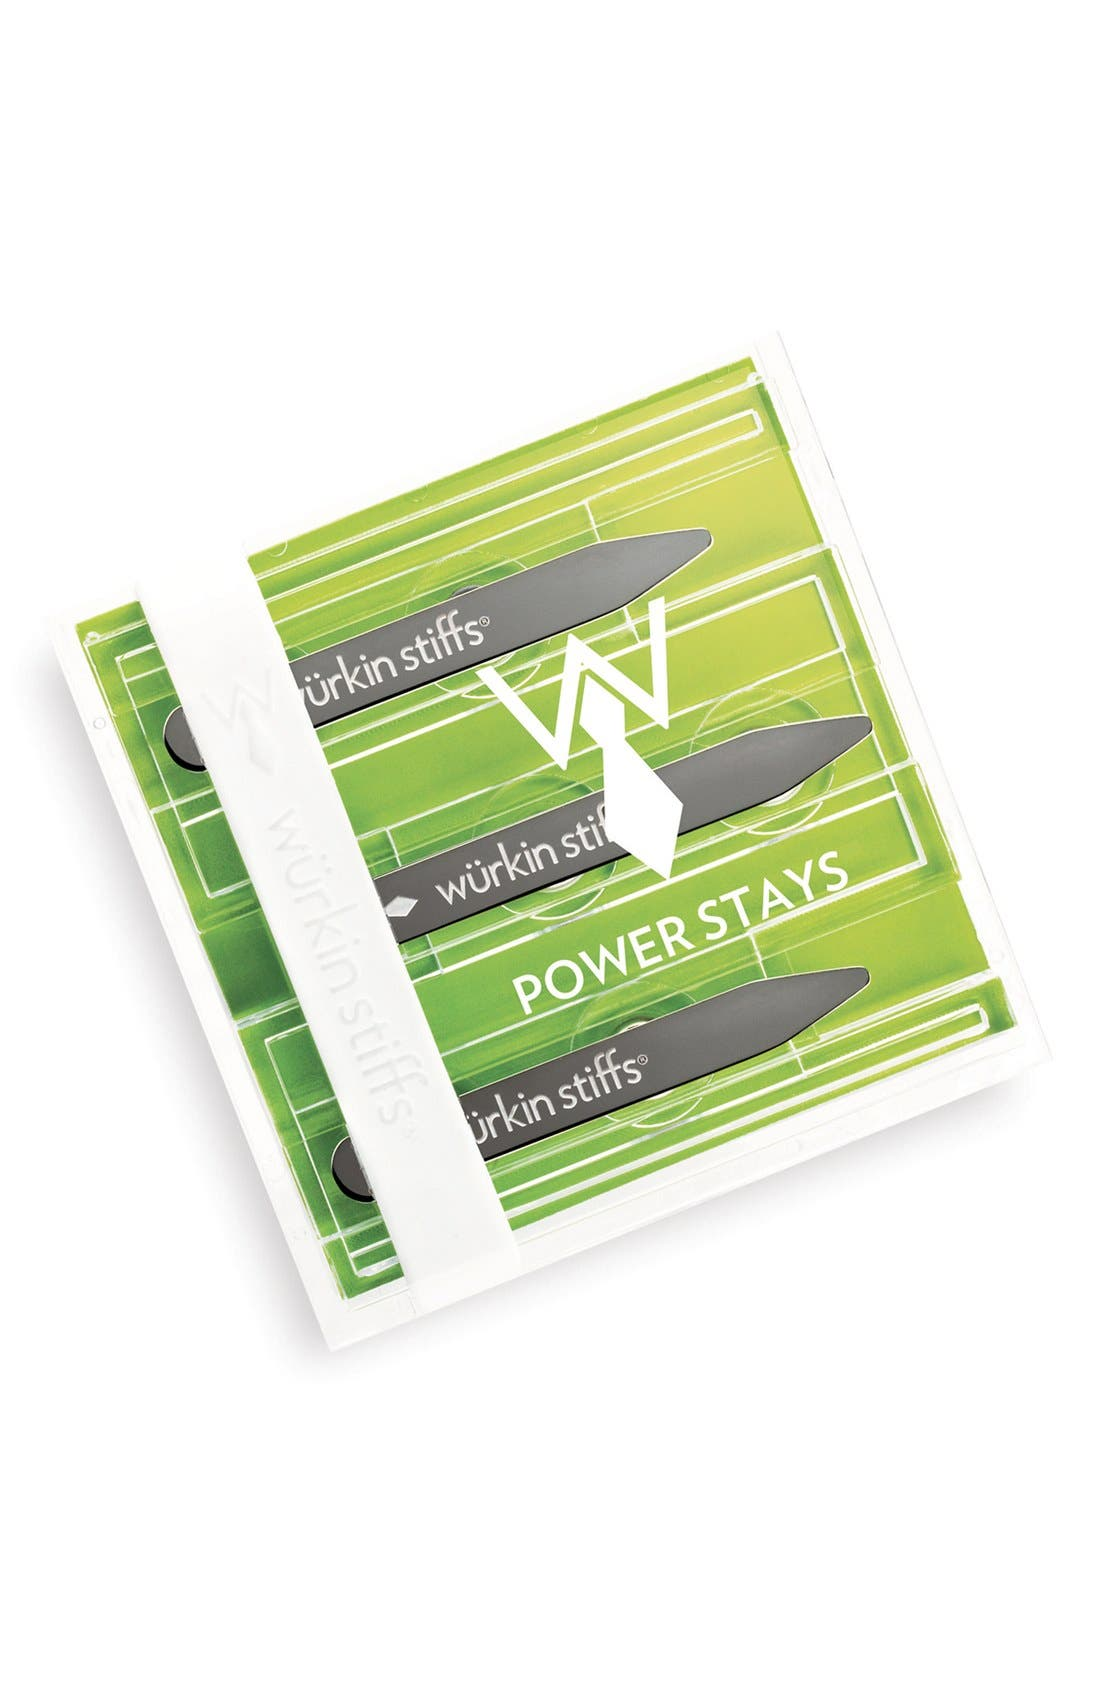 Würkin Stiffs Power Stays™ (3-Pack)